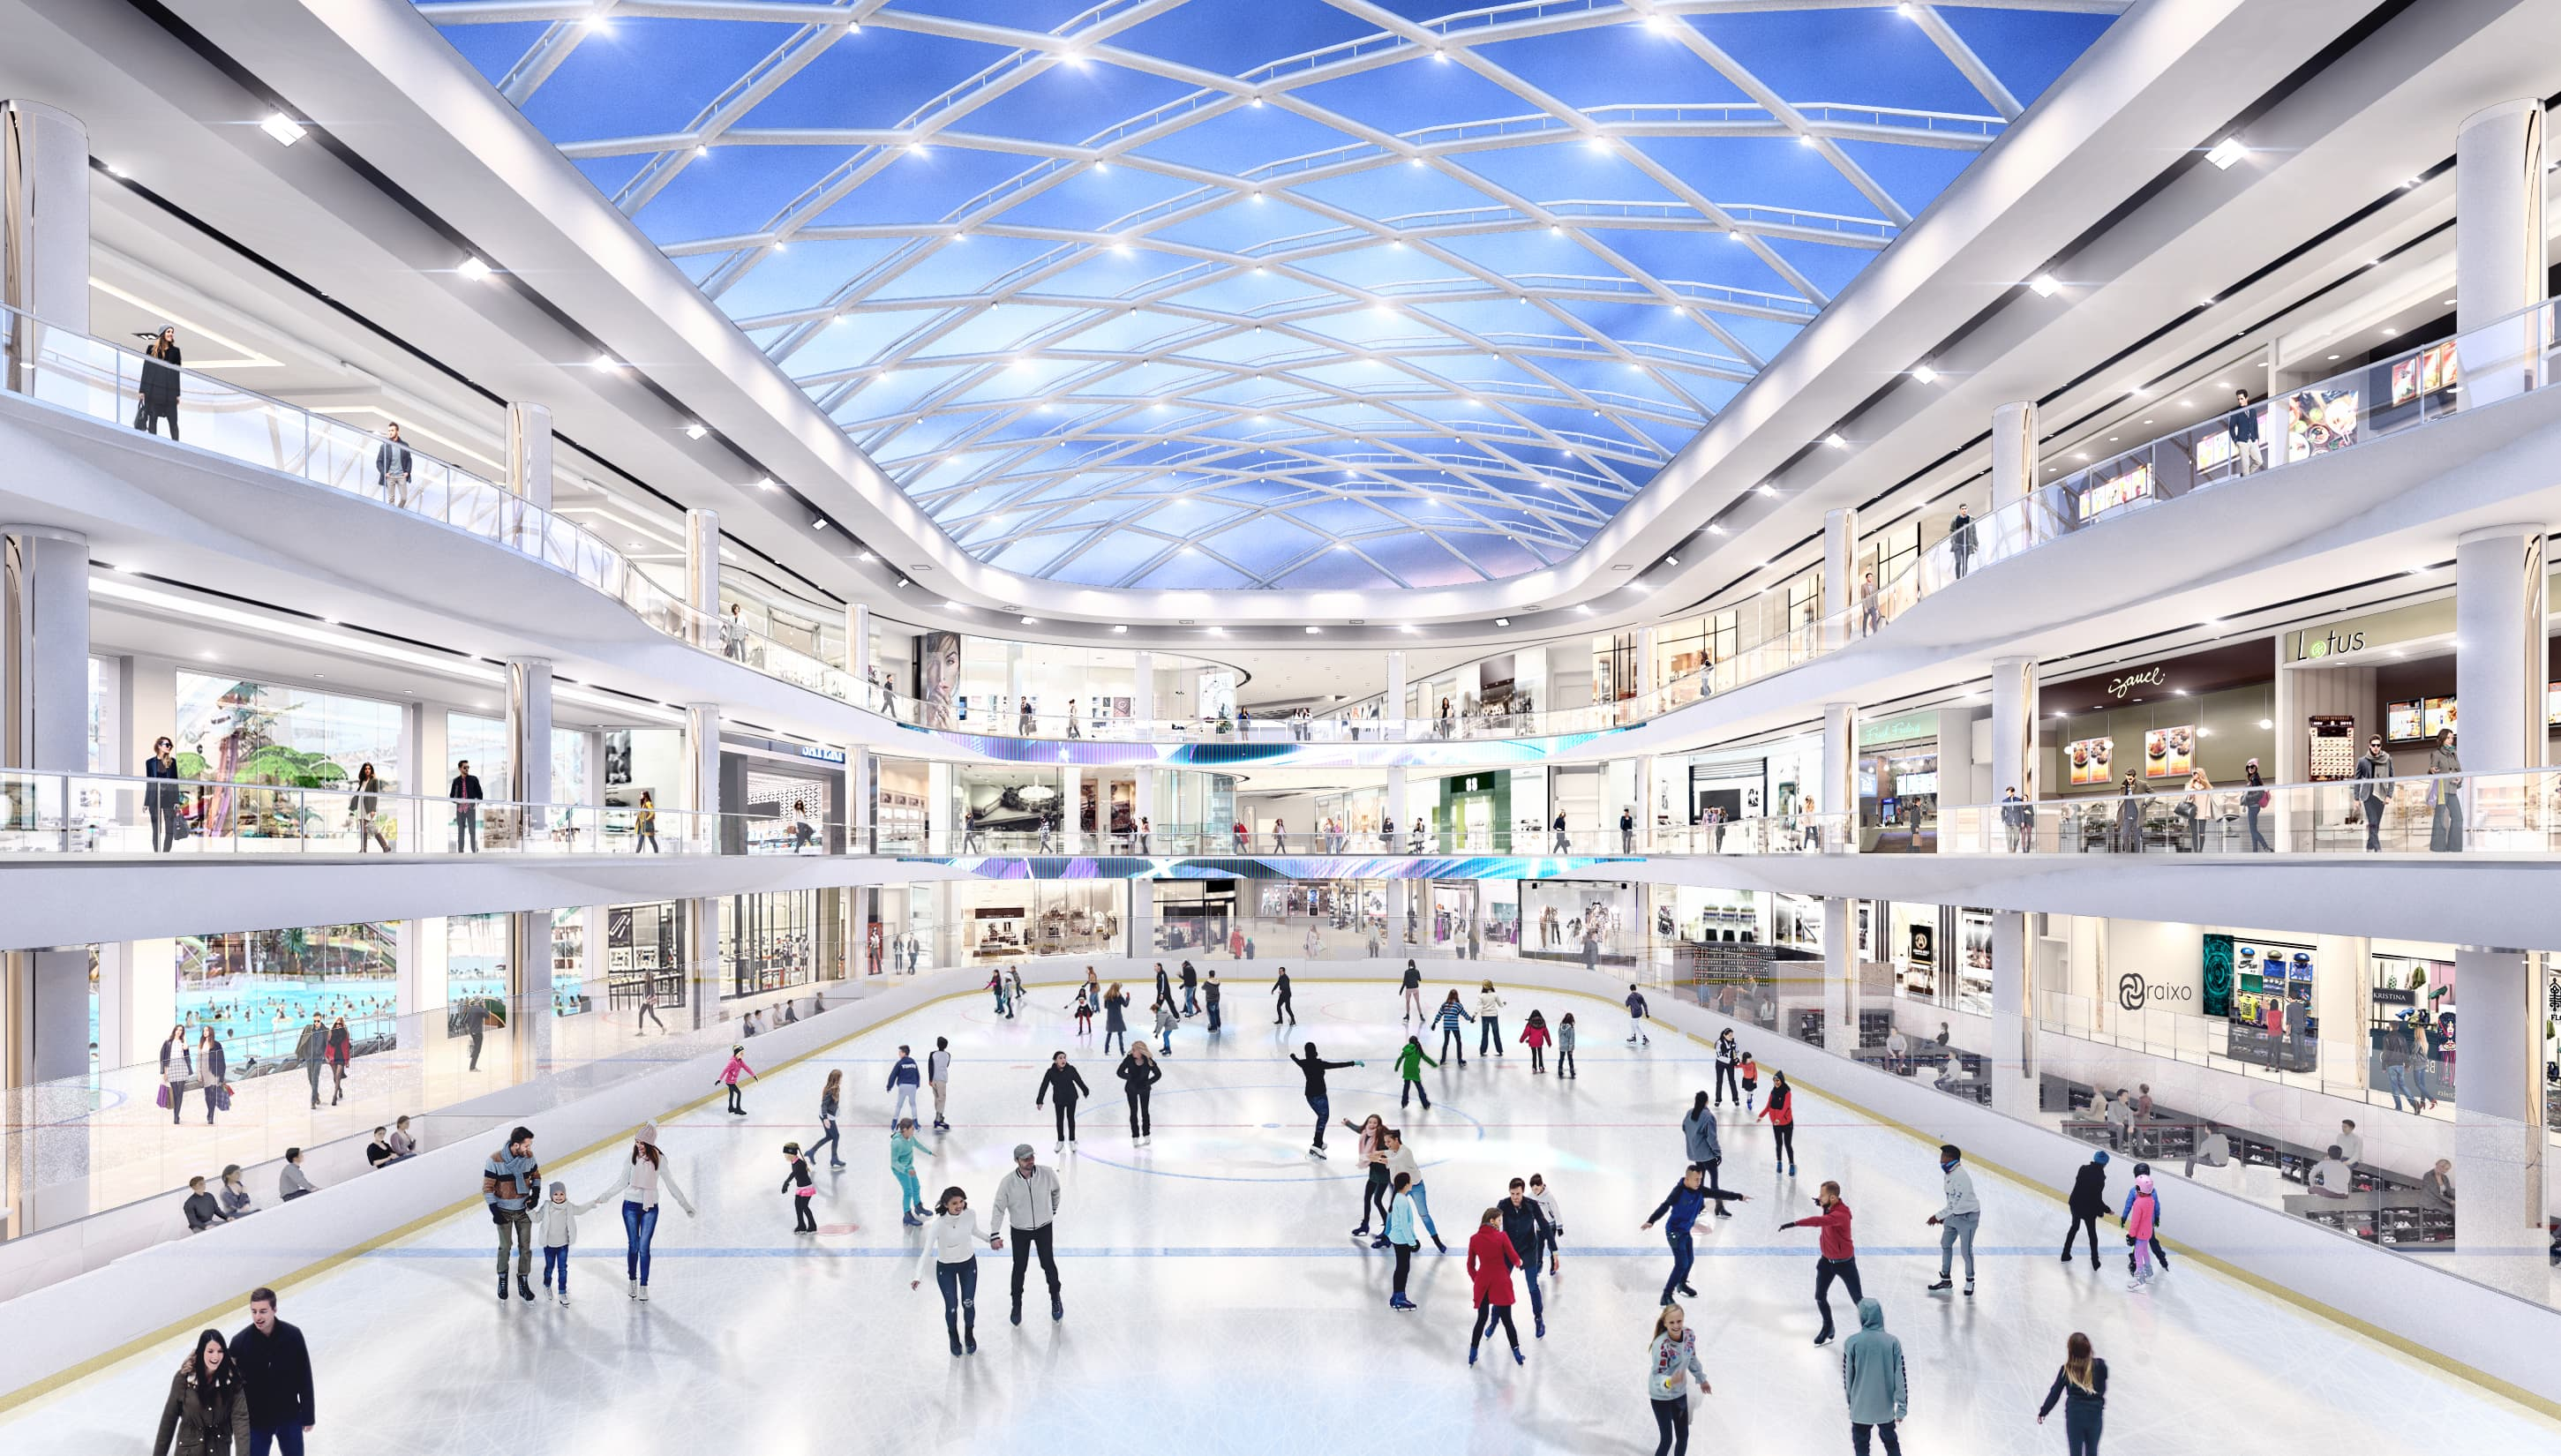 Meet Triple Five Group: The real estate developers behind New Jersey's 'American Dream' mega mall